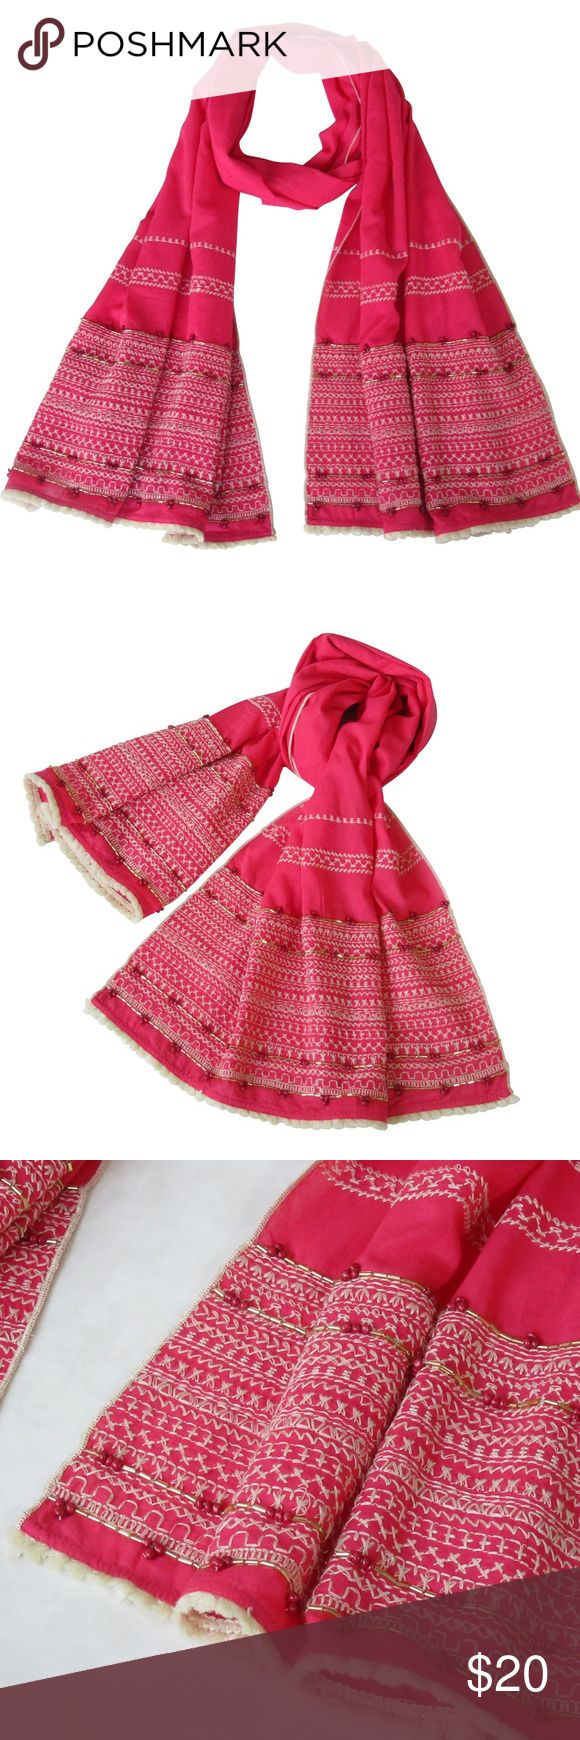 """JUST IN! Hand Embroidered Long Scarf; S/S OVERVIEW : HAND EMBROIDERED with beautiful details; these cotton scarves are a must have Long scarf with gold embellishment, contrasting beads and off white fringes. Ask us for more colors  PRODUCT DETAILS STYLE # EB-SCV-009A RED/ DEEP PINK MATERIAL: 100% Cotton DIMENSIONS: 79"""" x 18"""" (inches) WASH CARE: Hand wash cold; dry flat  Comes in a lovely cotton reusable bag 7 Artisan Street ® Accessories Scarves & Wraps"""